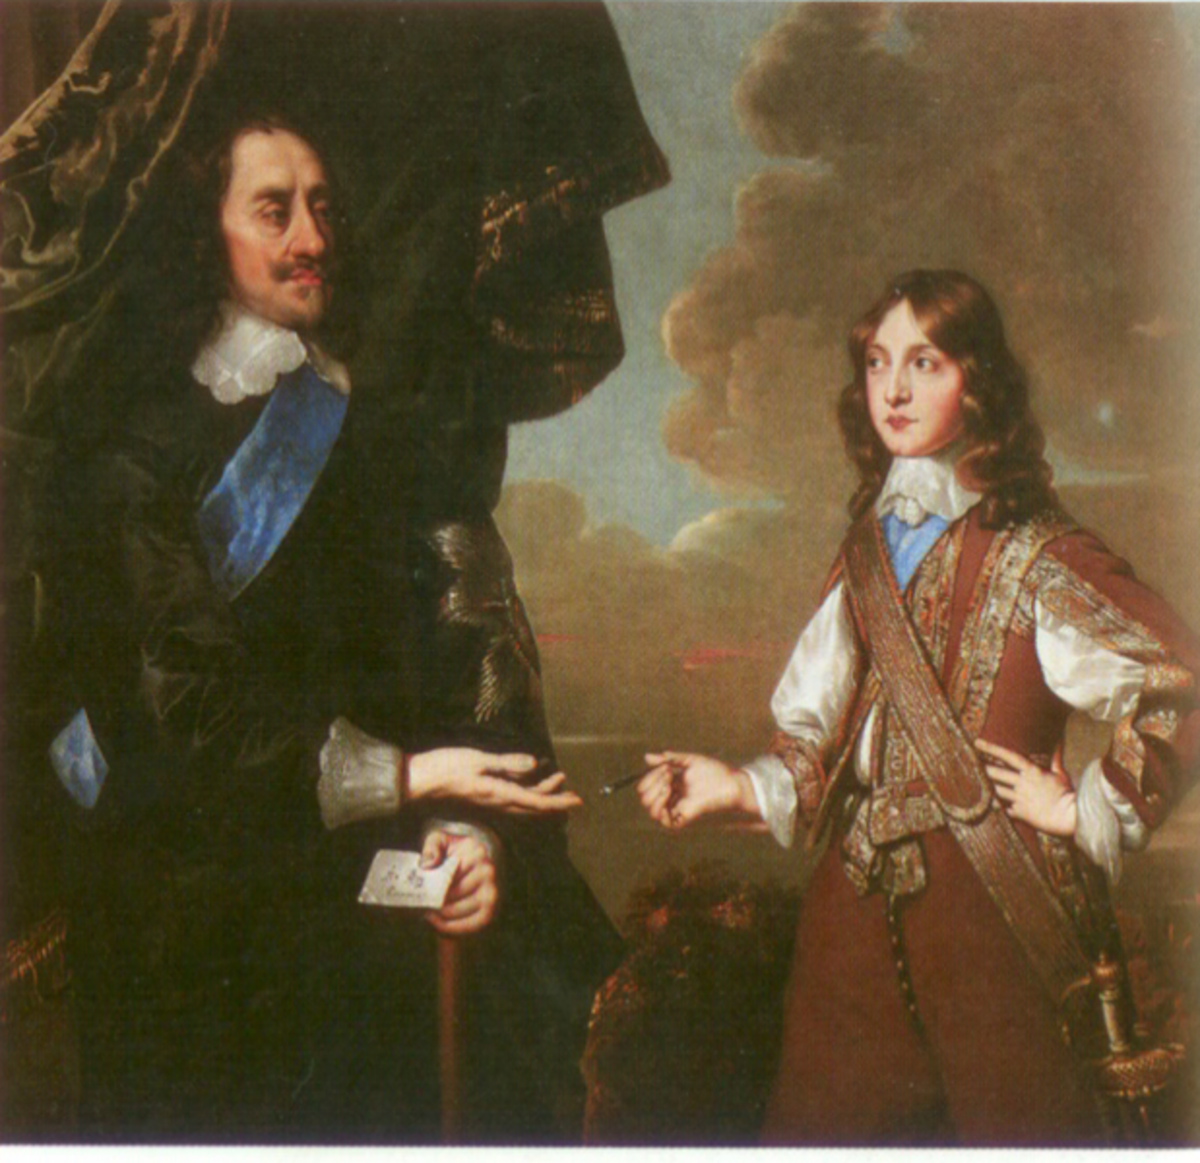 James II with his father, Charles I of England